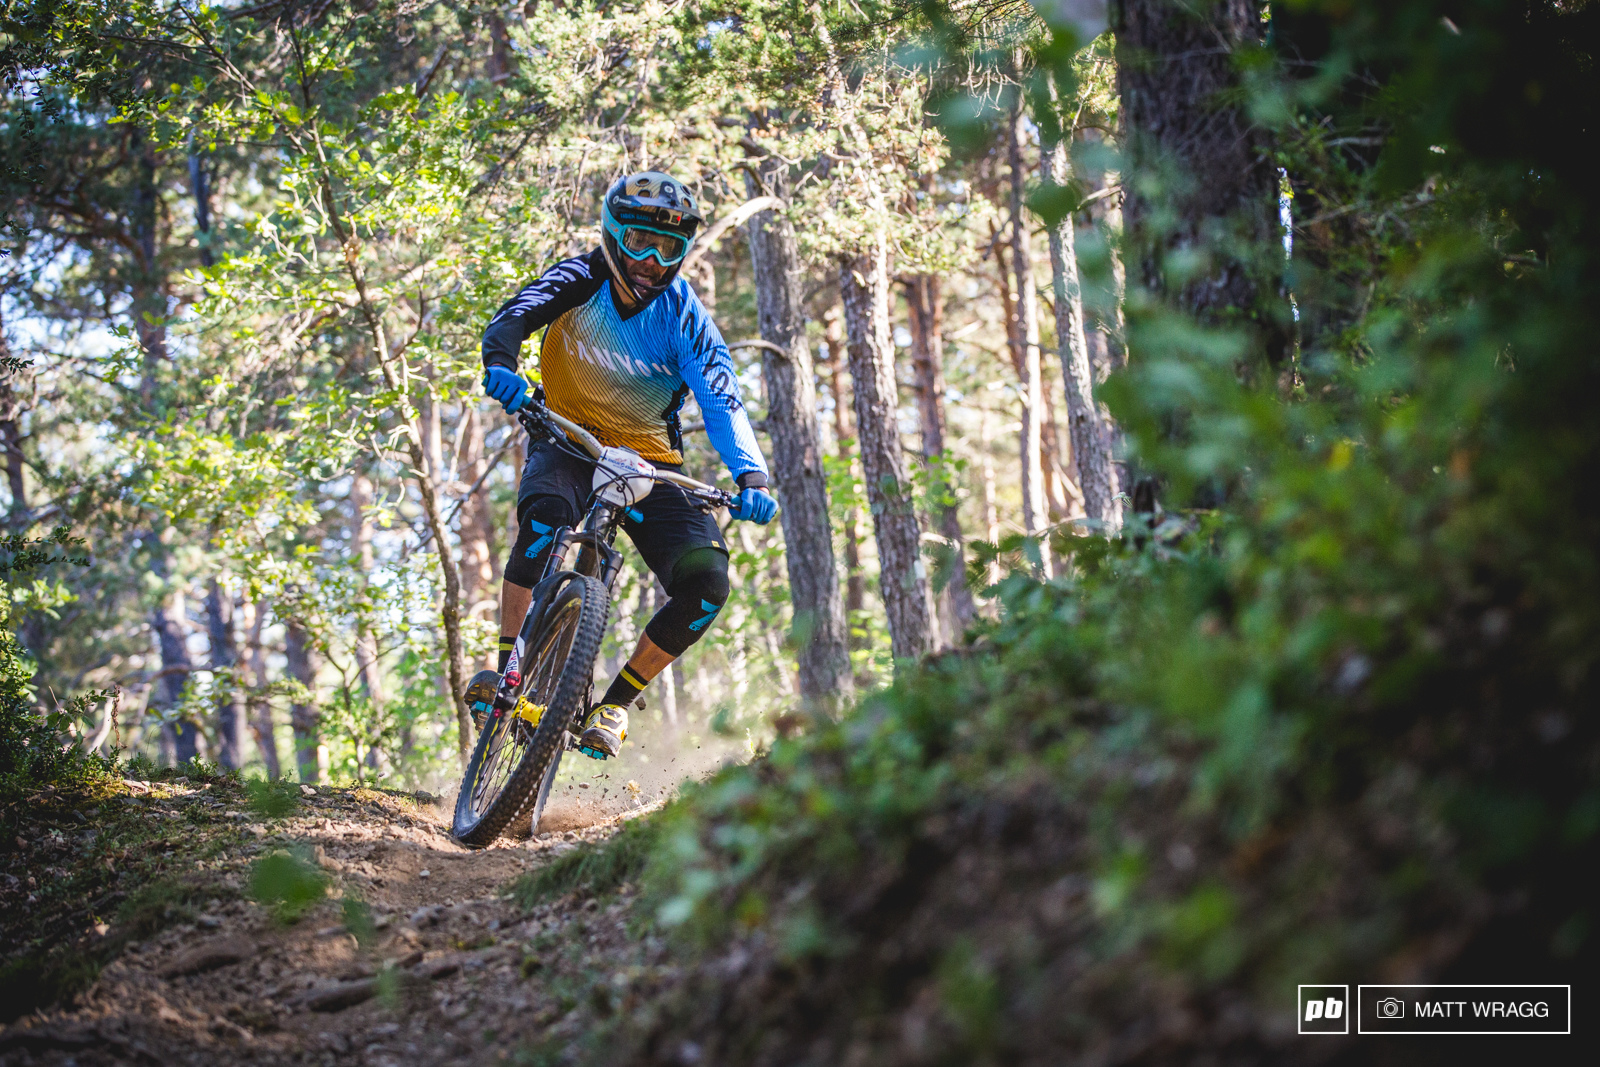 Last years winner Fabien Barel got off to a steady start but made a couple of mistakes on the first stage.